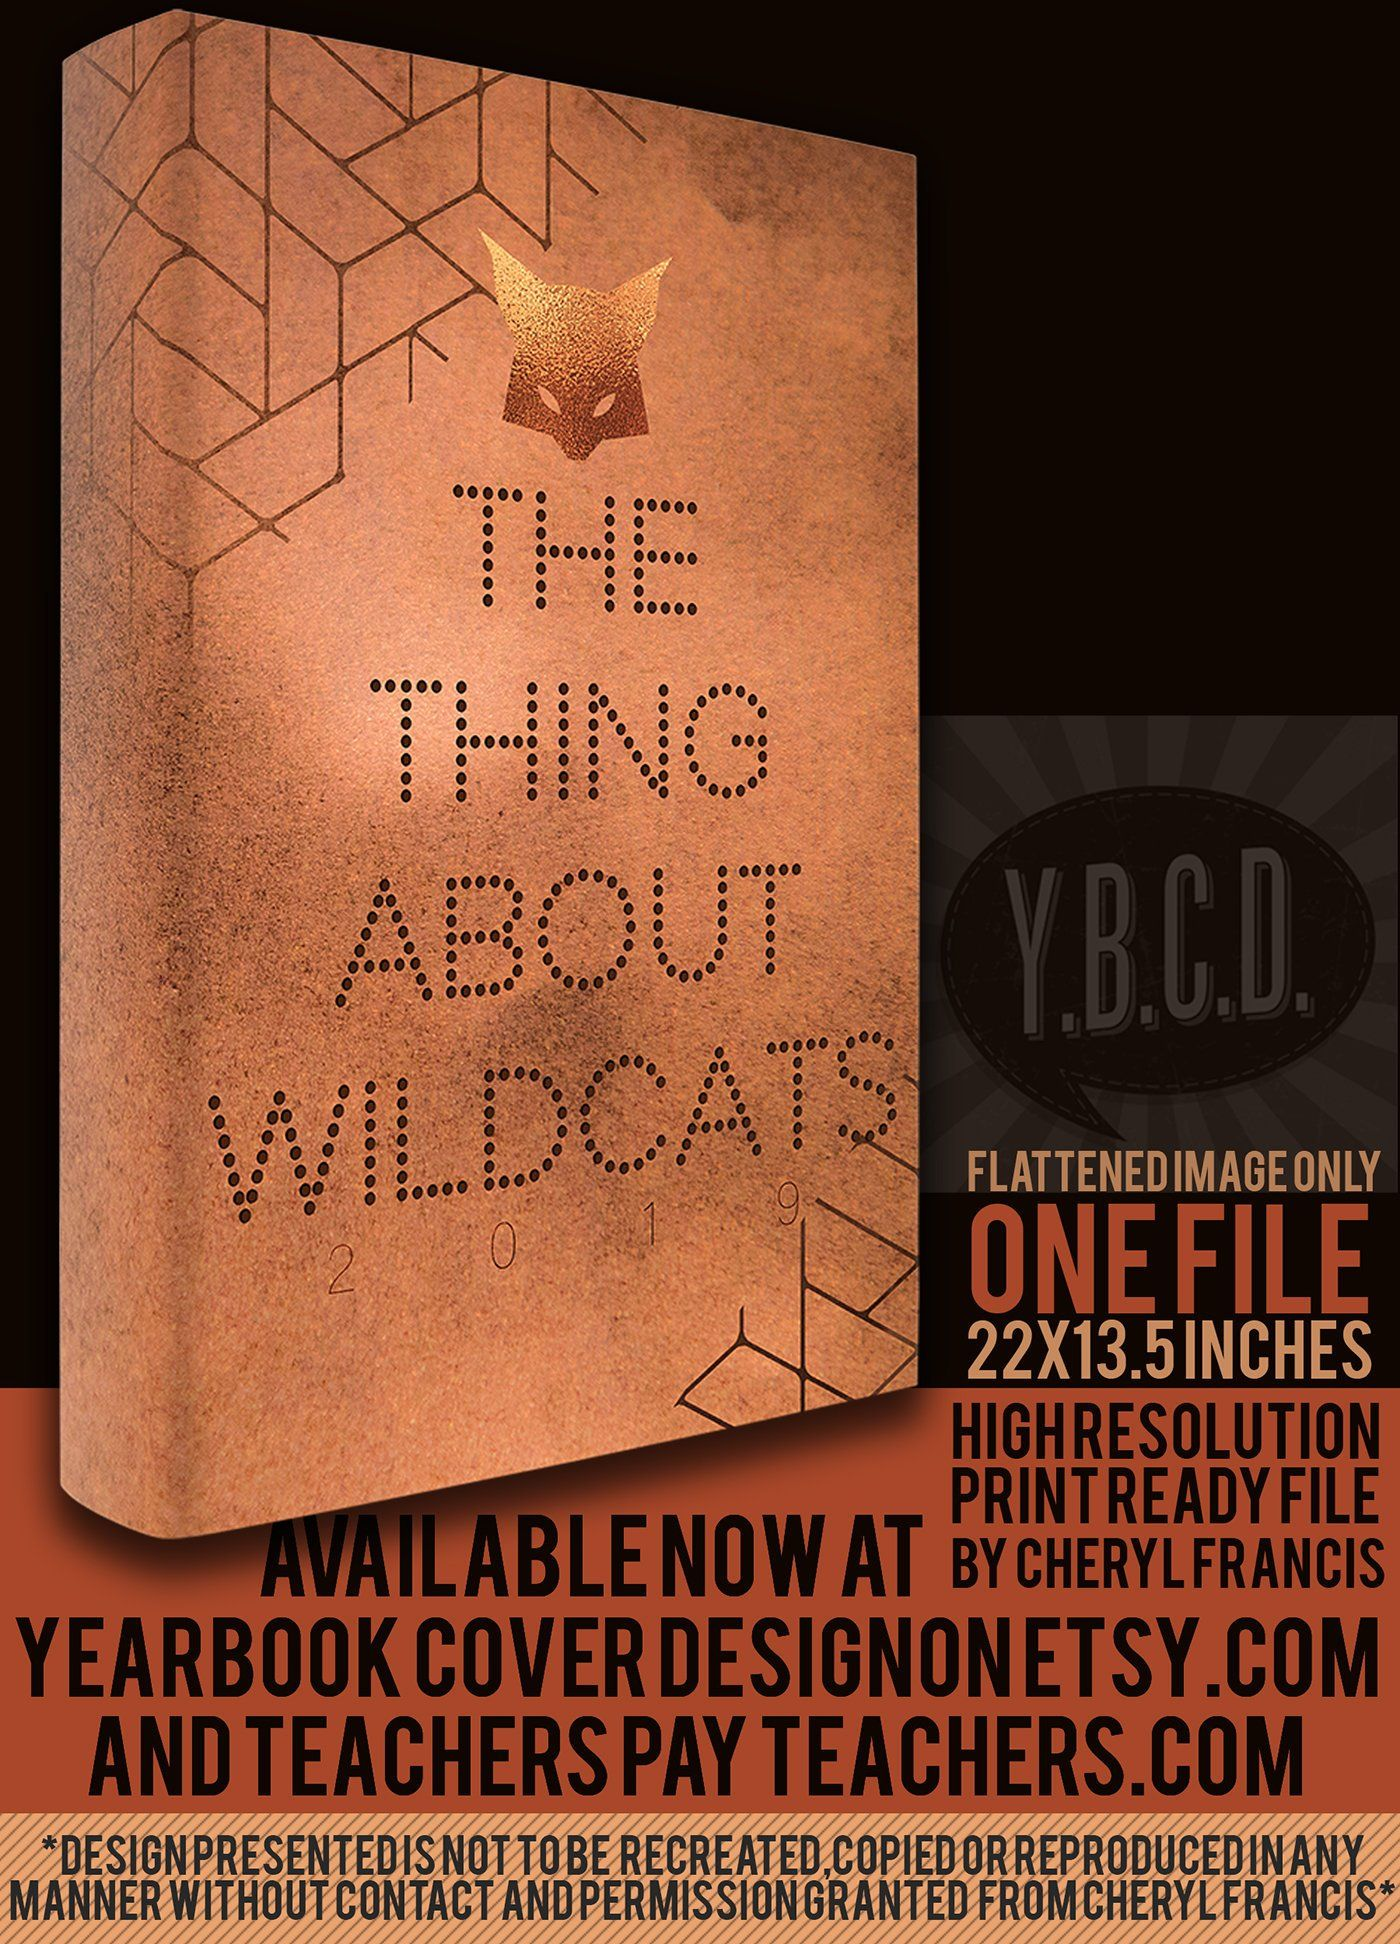 Yearbook Ideas 2019 For School Yearbook Cover Design The Thing About Wildcats 2019 | yearbook